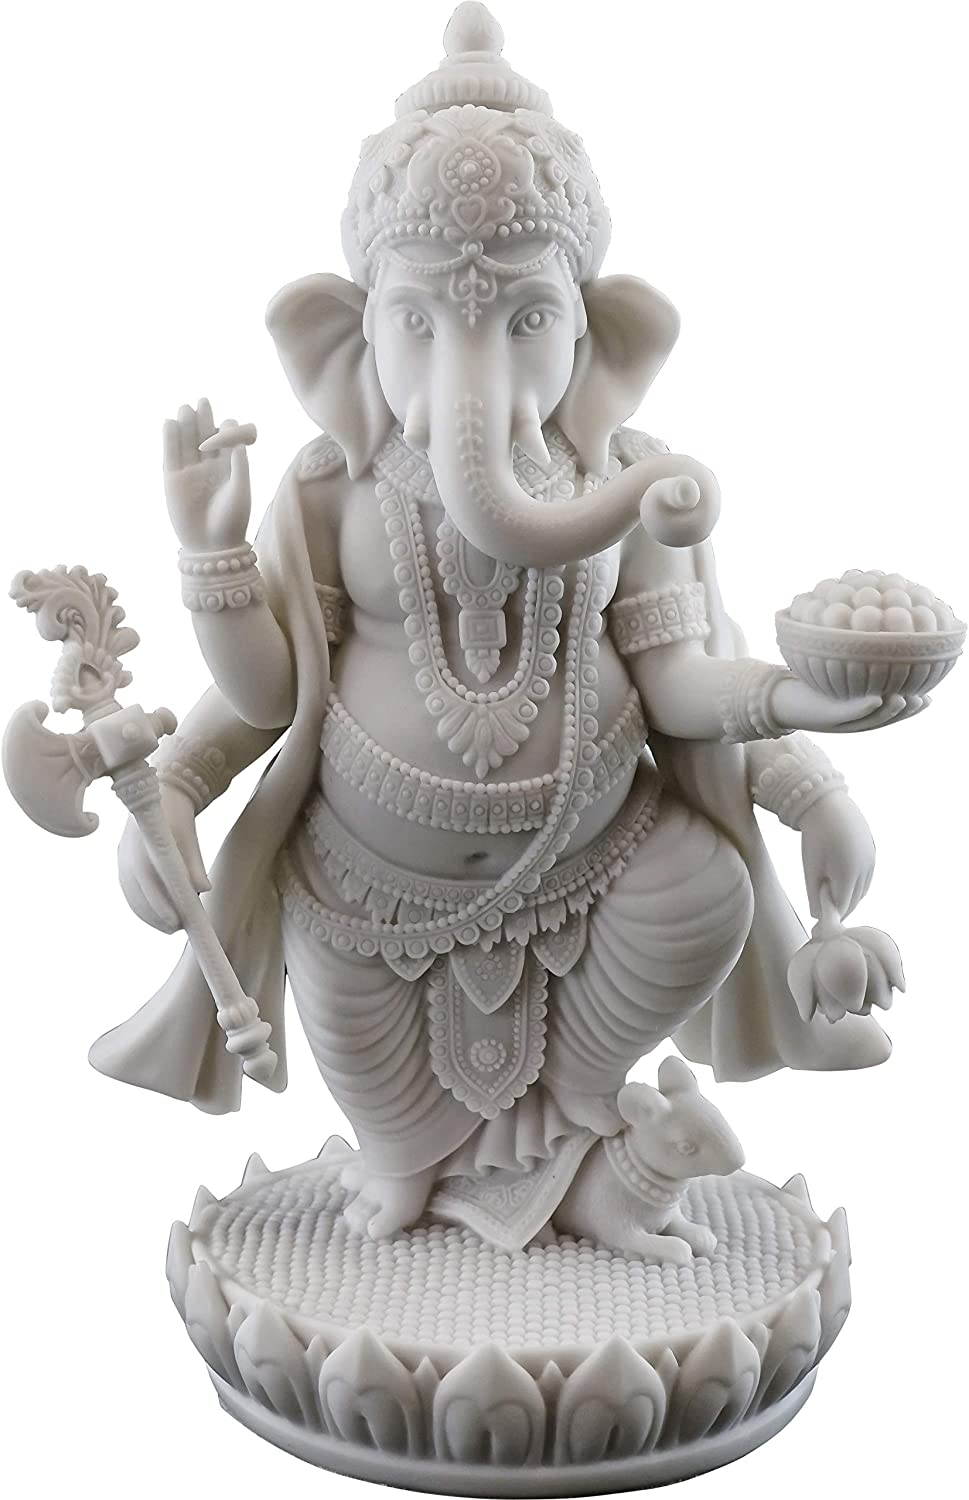 Top Collection 7.5  H 4.75  Standing Ganesh Statue in White Marble Finish - Hindu Lord of Success Sculpture